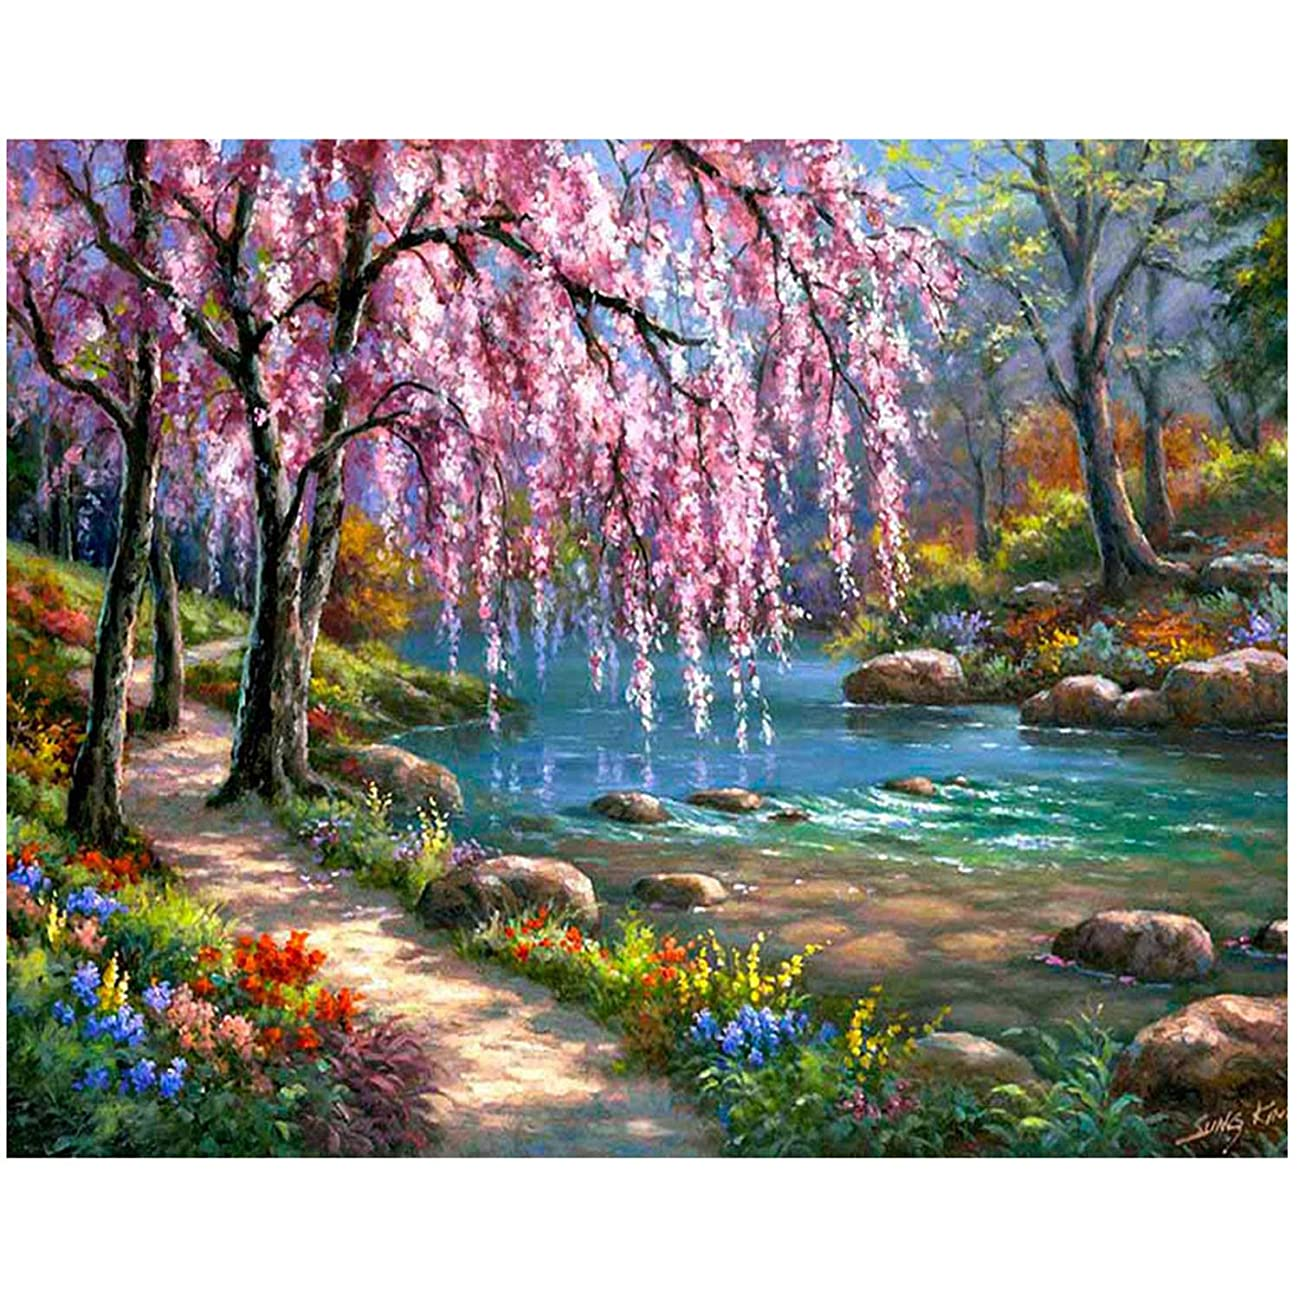 ANMUXI 5D Diamond Painting Kits Full Square Drills for Adults 30X40CM Pink Tree Landscape Scenery Paint with Diamonds Art for Stress-Relief & Home Decor